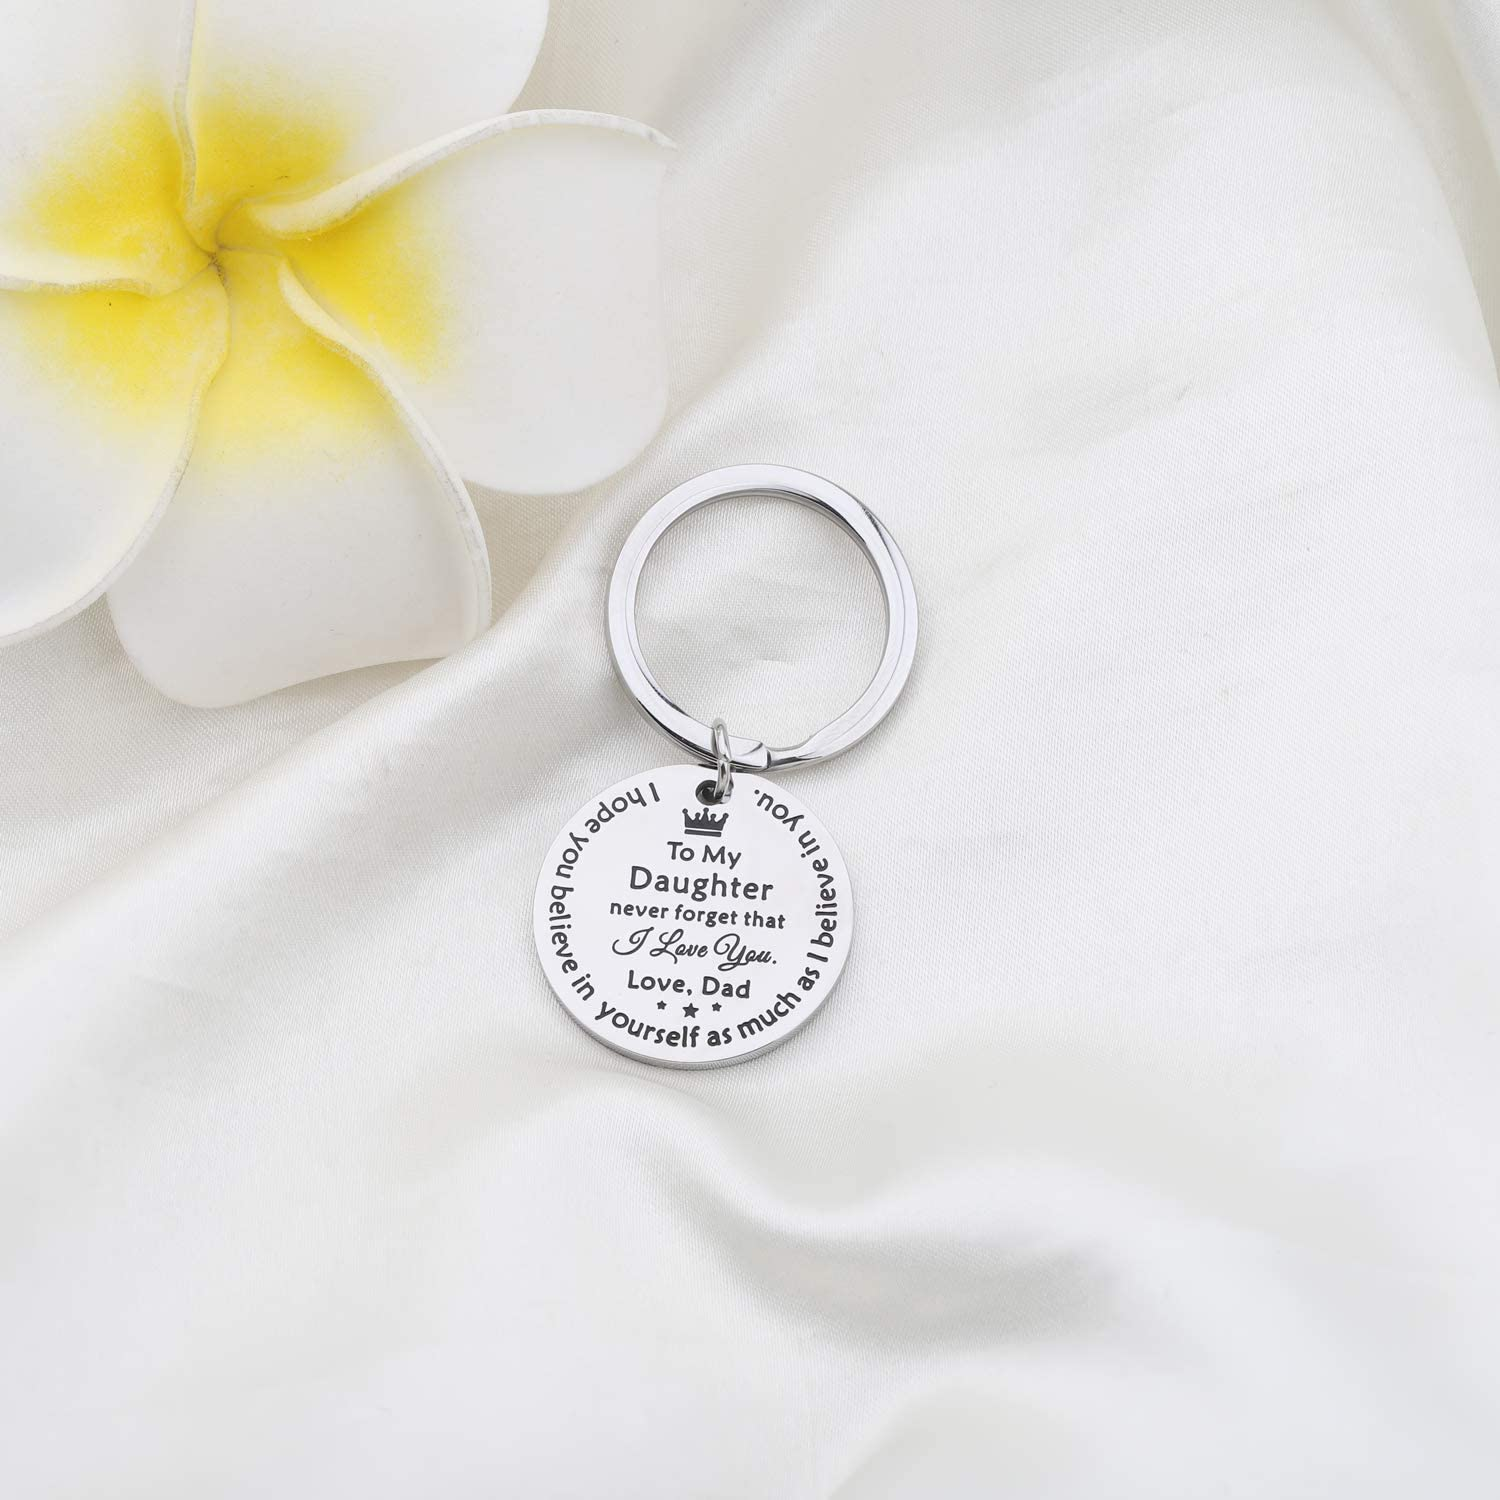 Believe in Yourself Gzrlyf to My Daughter Keychain Never Forget That I Love You Inspirational Gifts for Daughter from Dad